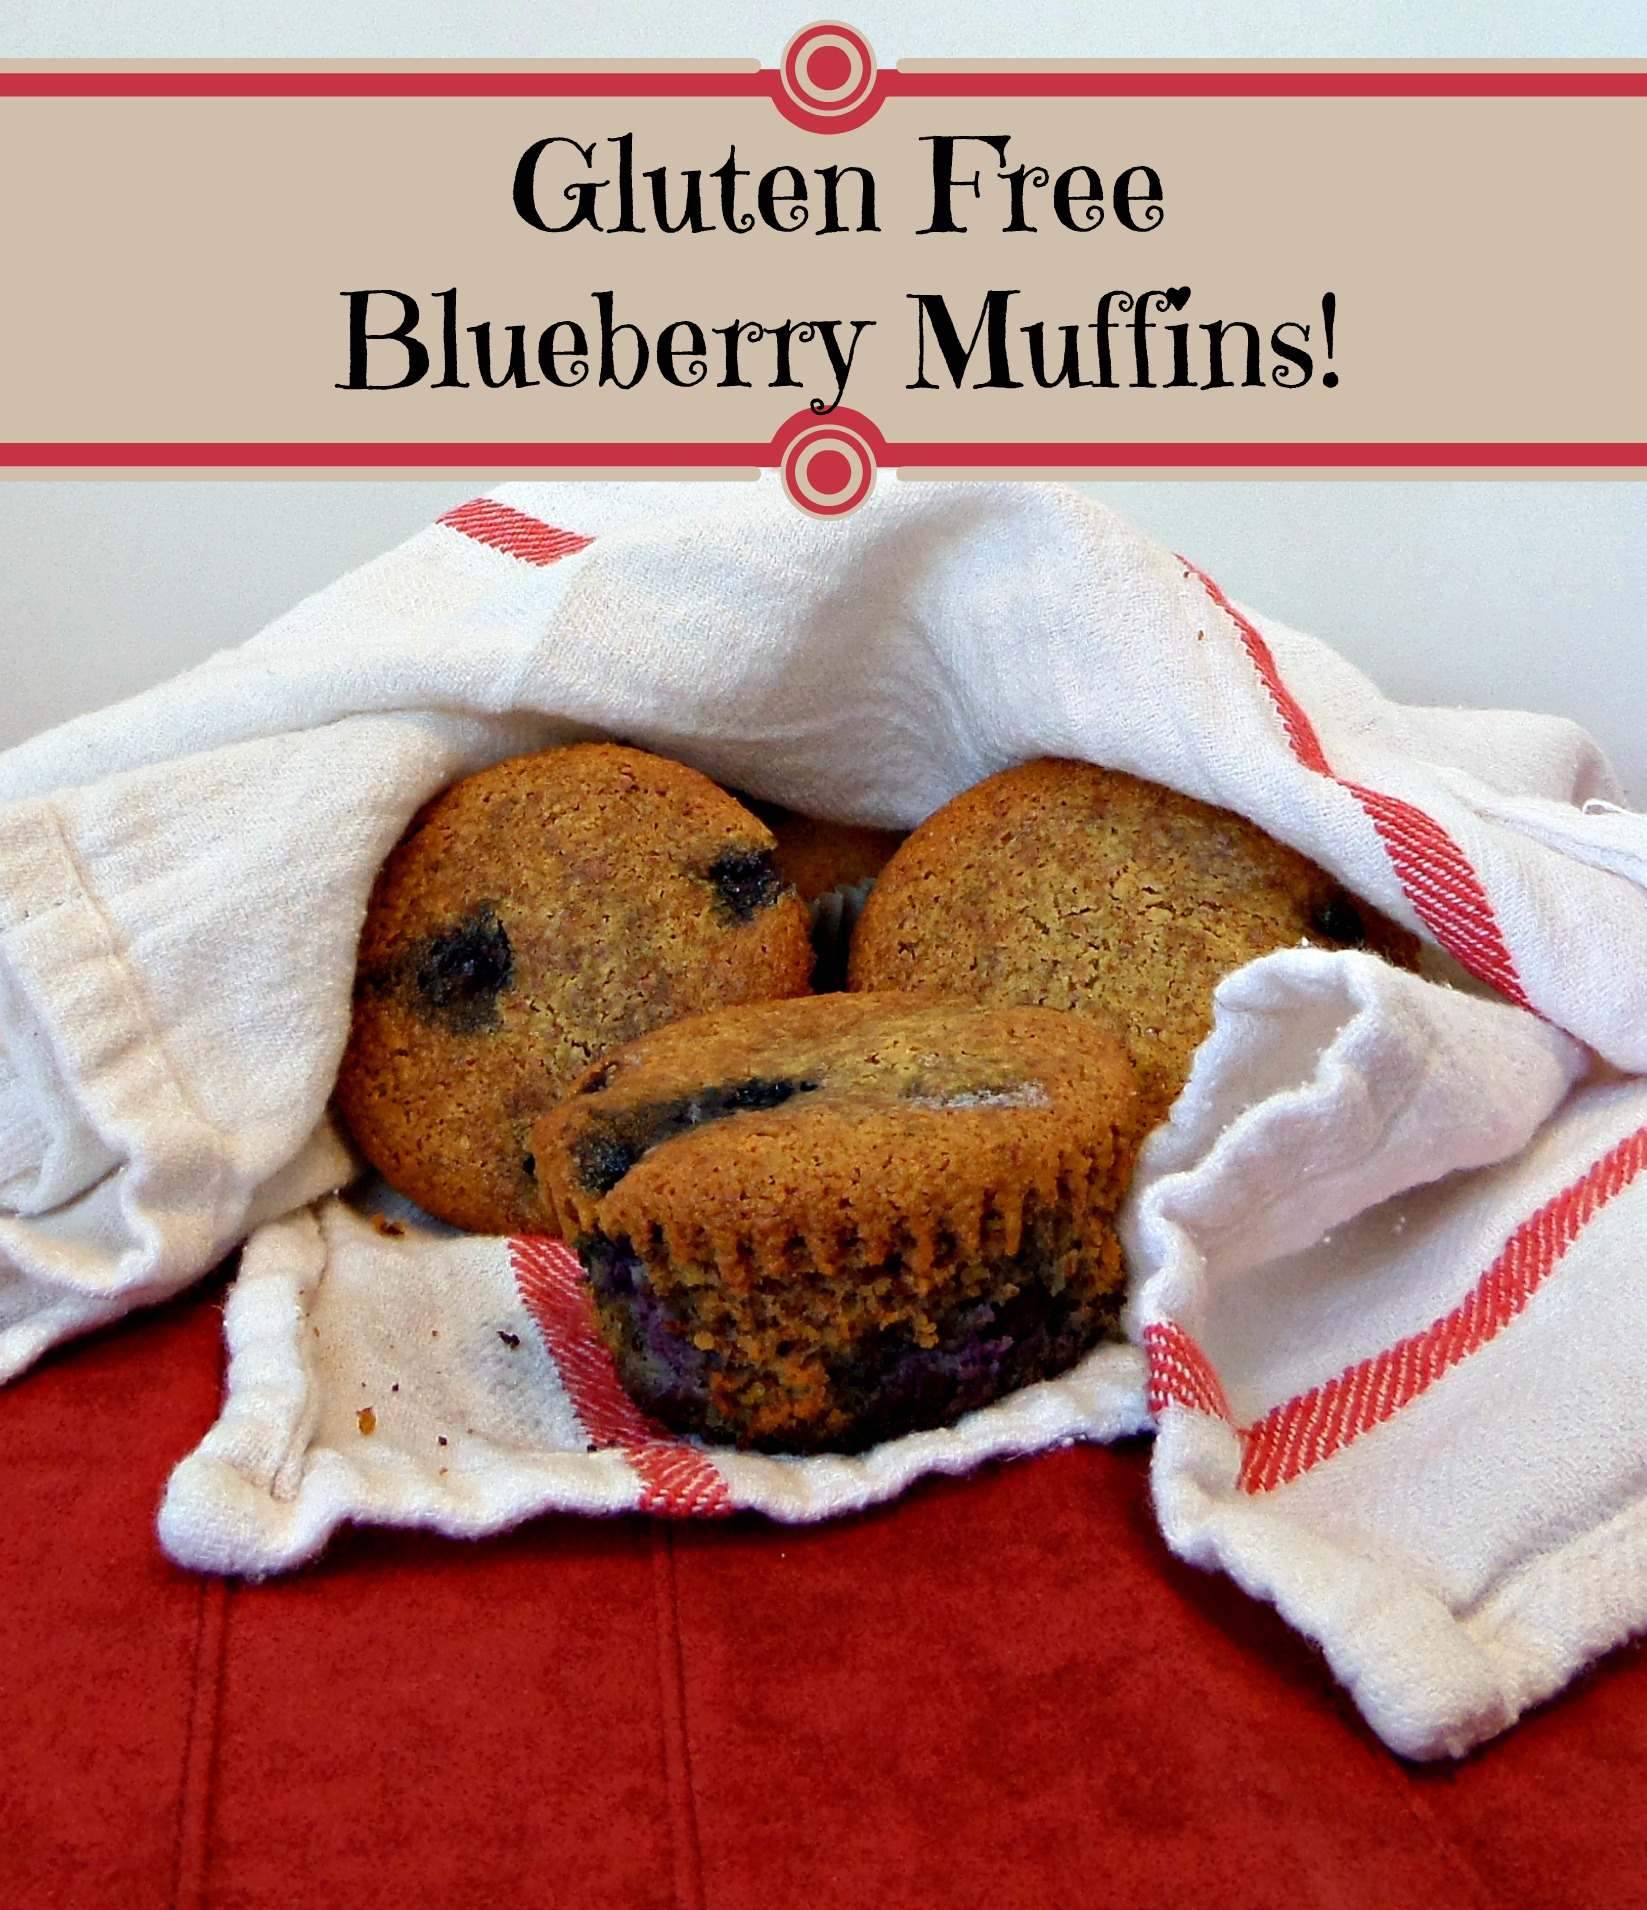 Gluten Free Blueberry Muffins ~Made with Almond Flour